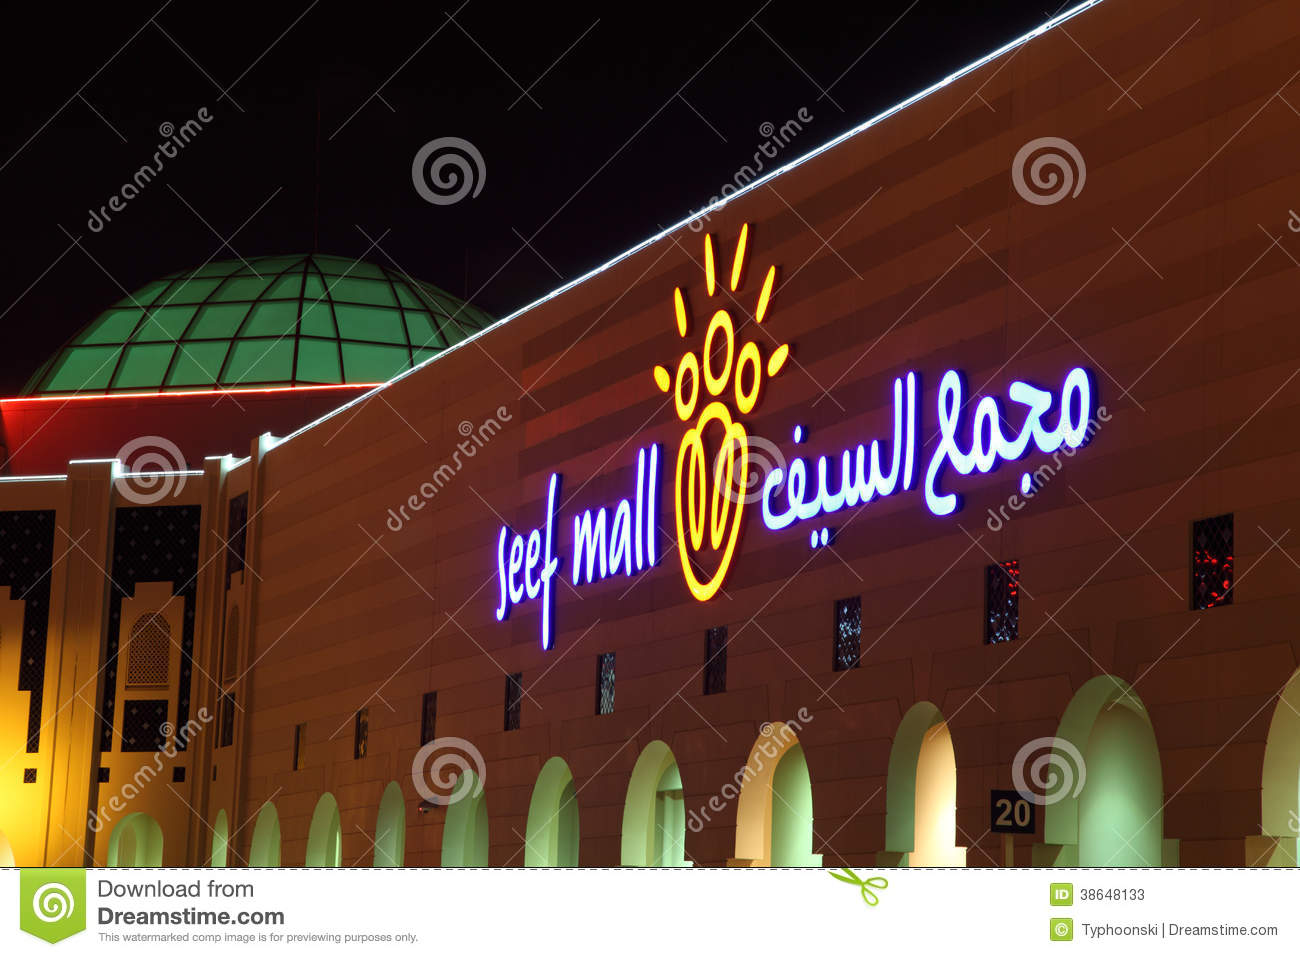 Seef mall in manama kingdom of bahrain editorial stock for United international decor bahrain